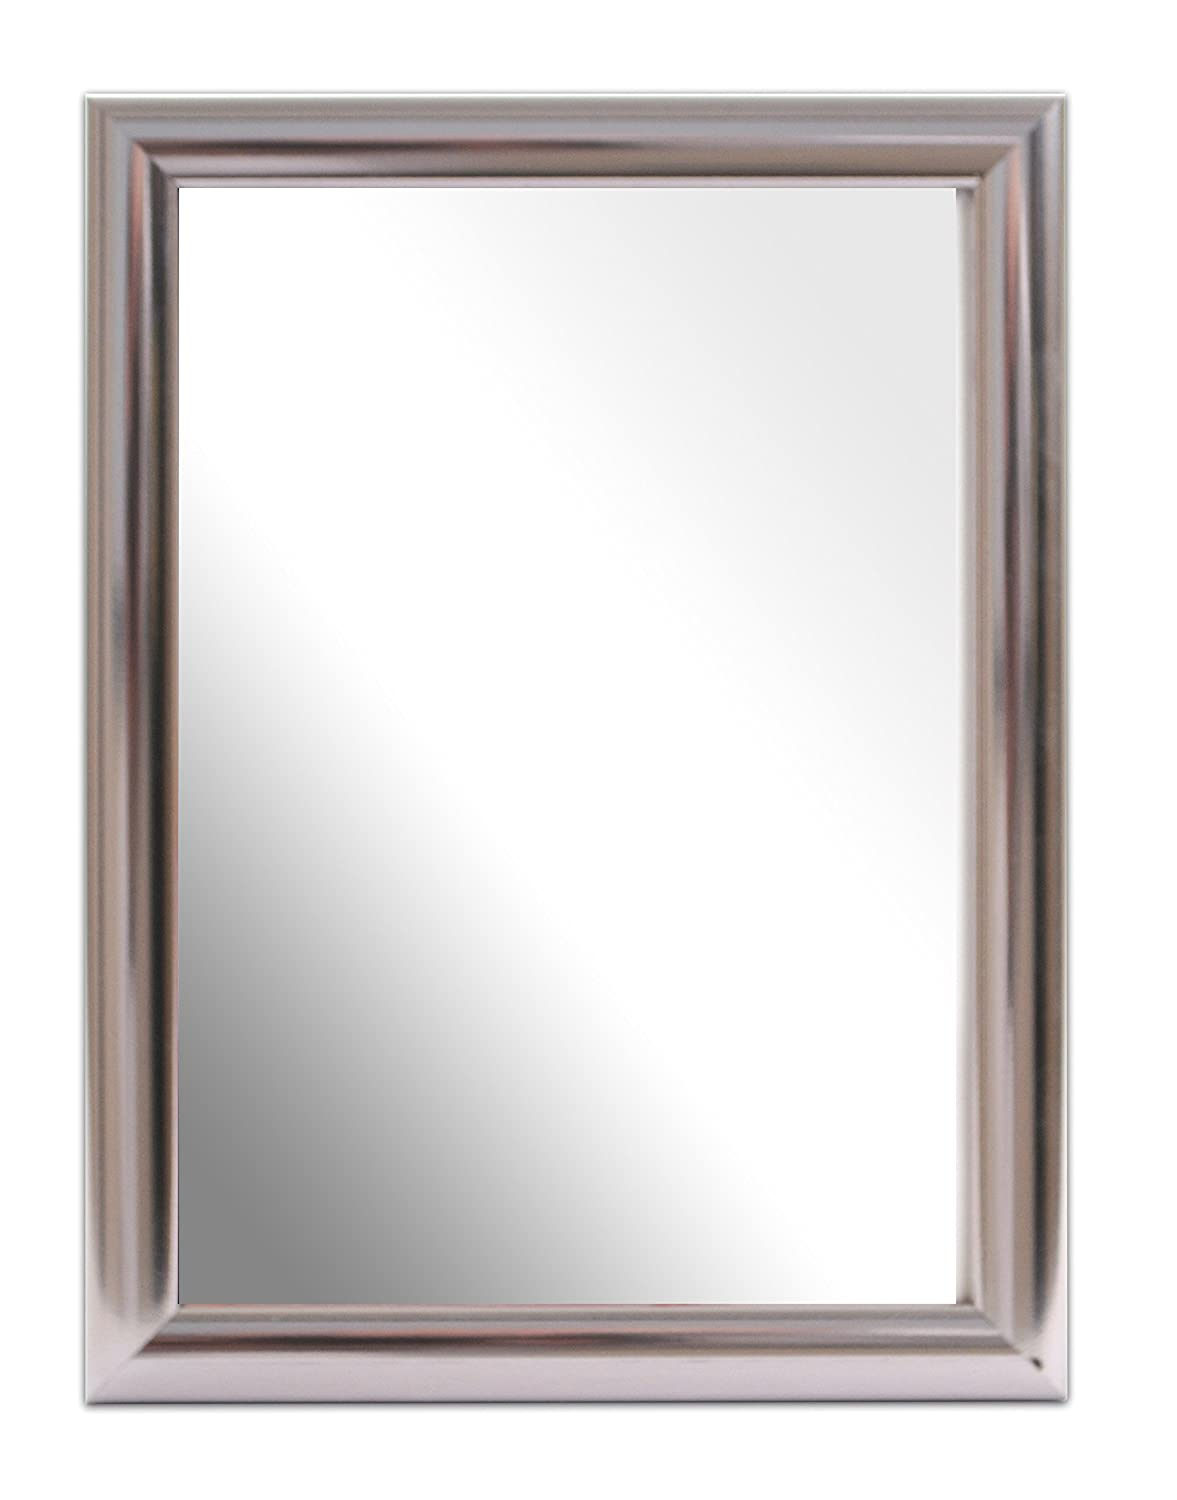 Inov8 British Made A4 Traditional Mirror, Pack of 2, Value Silver MFVD-VSLV-A4